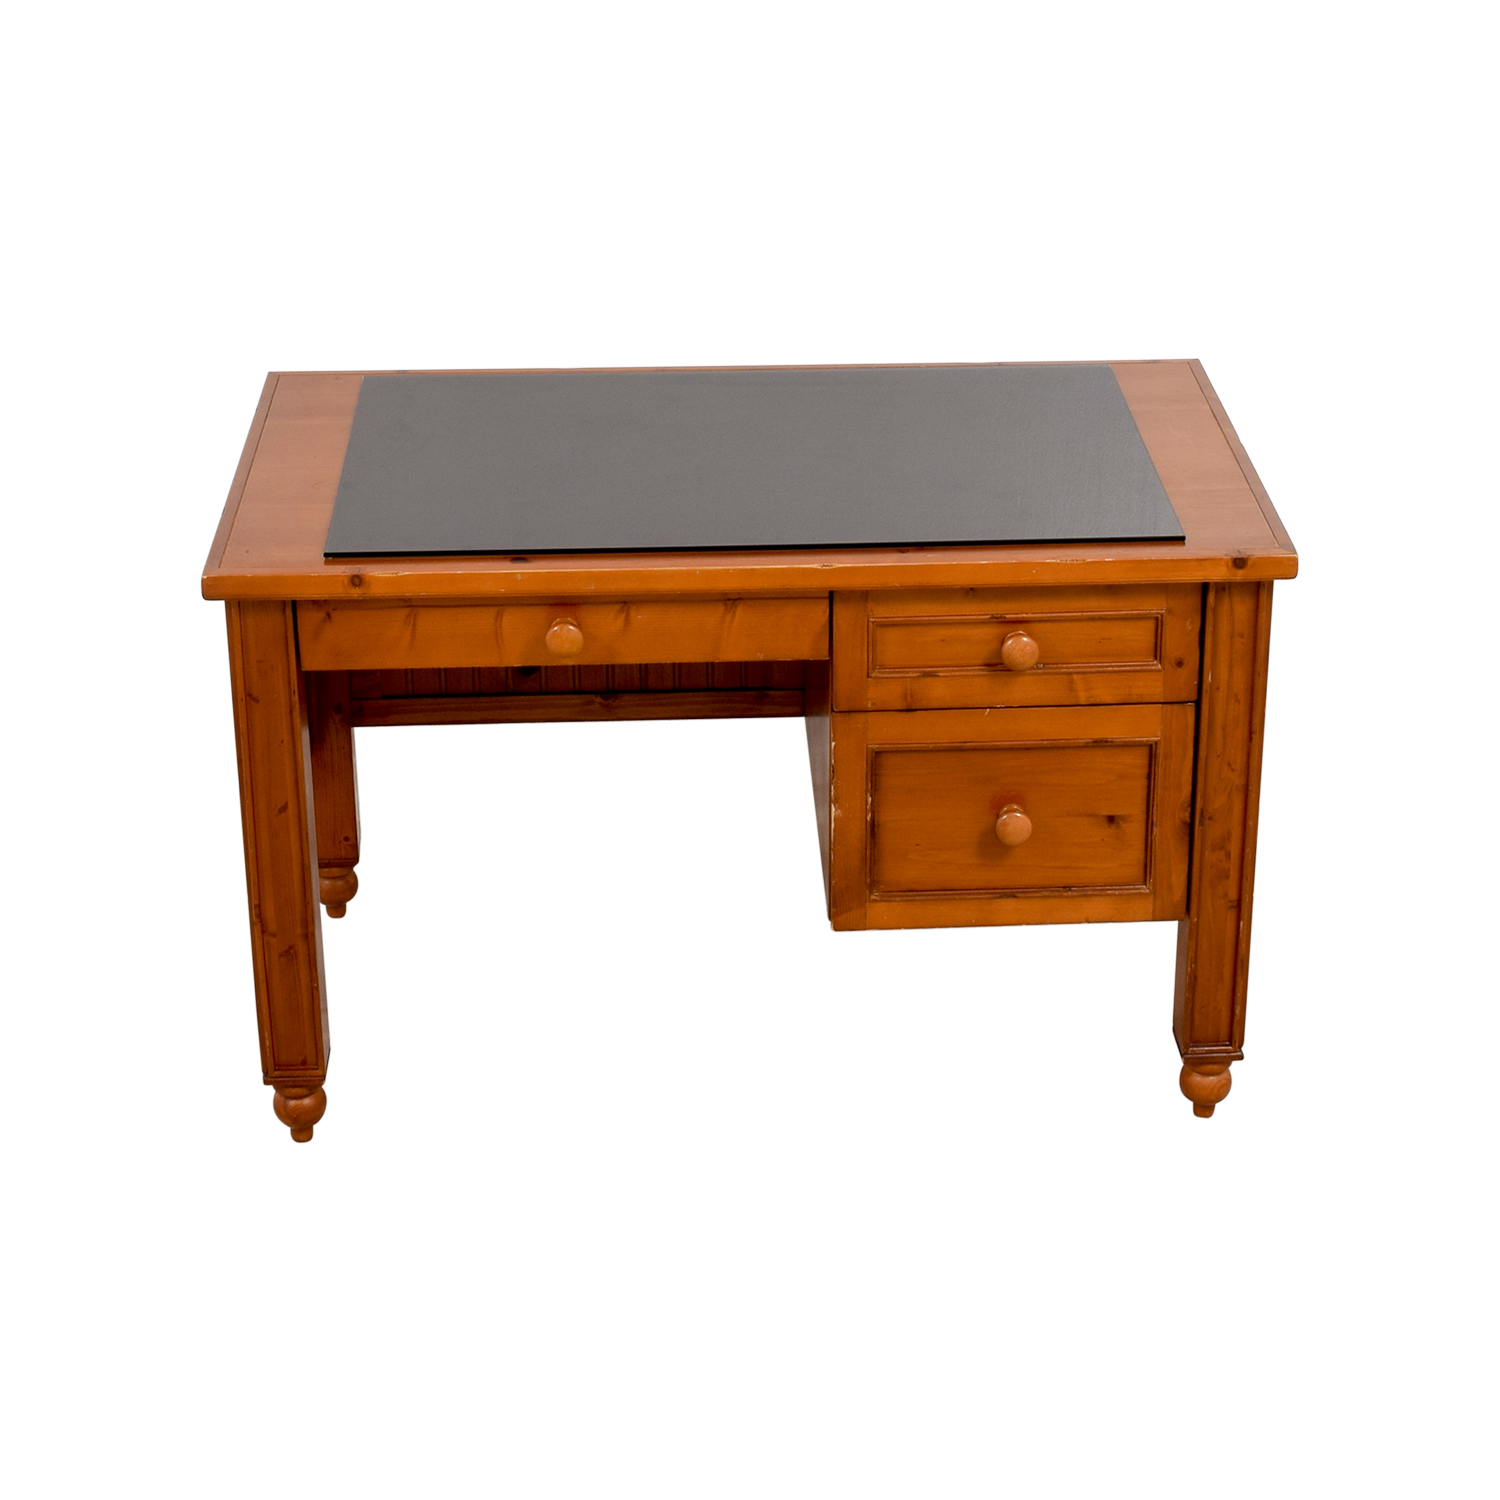 67 OFF  Pottery Barn Pottery Barn Solid Wood Desk  Tables